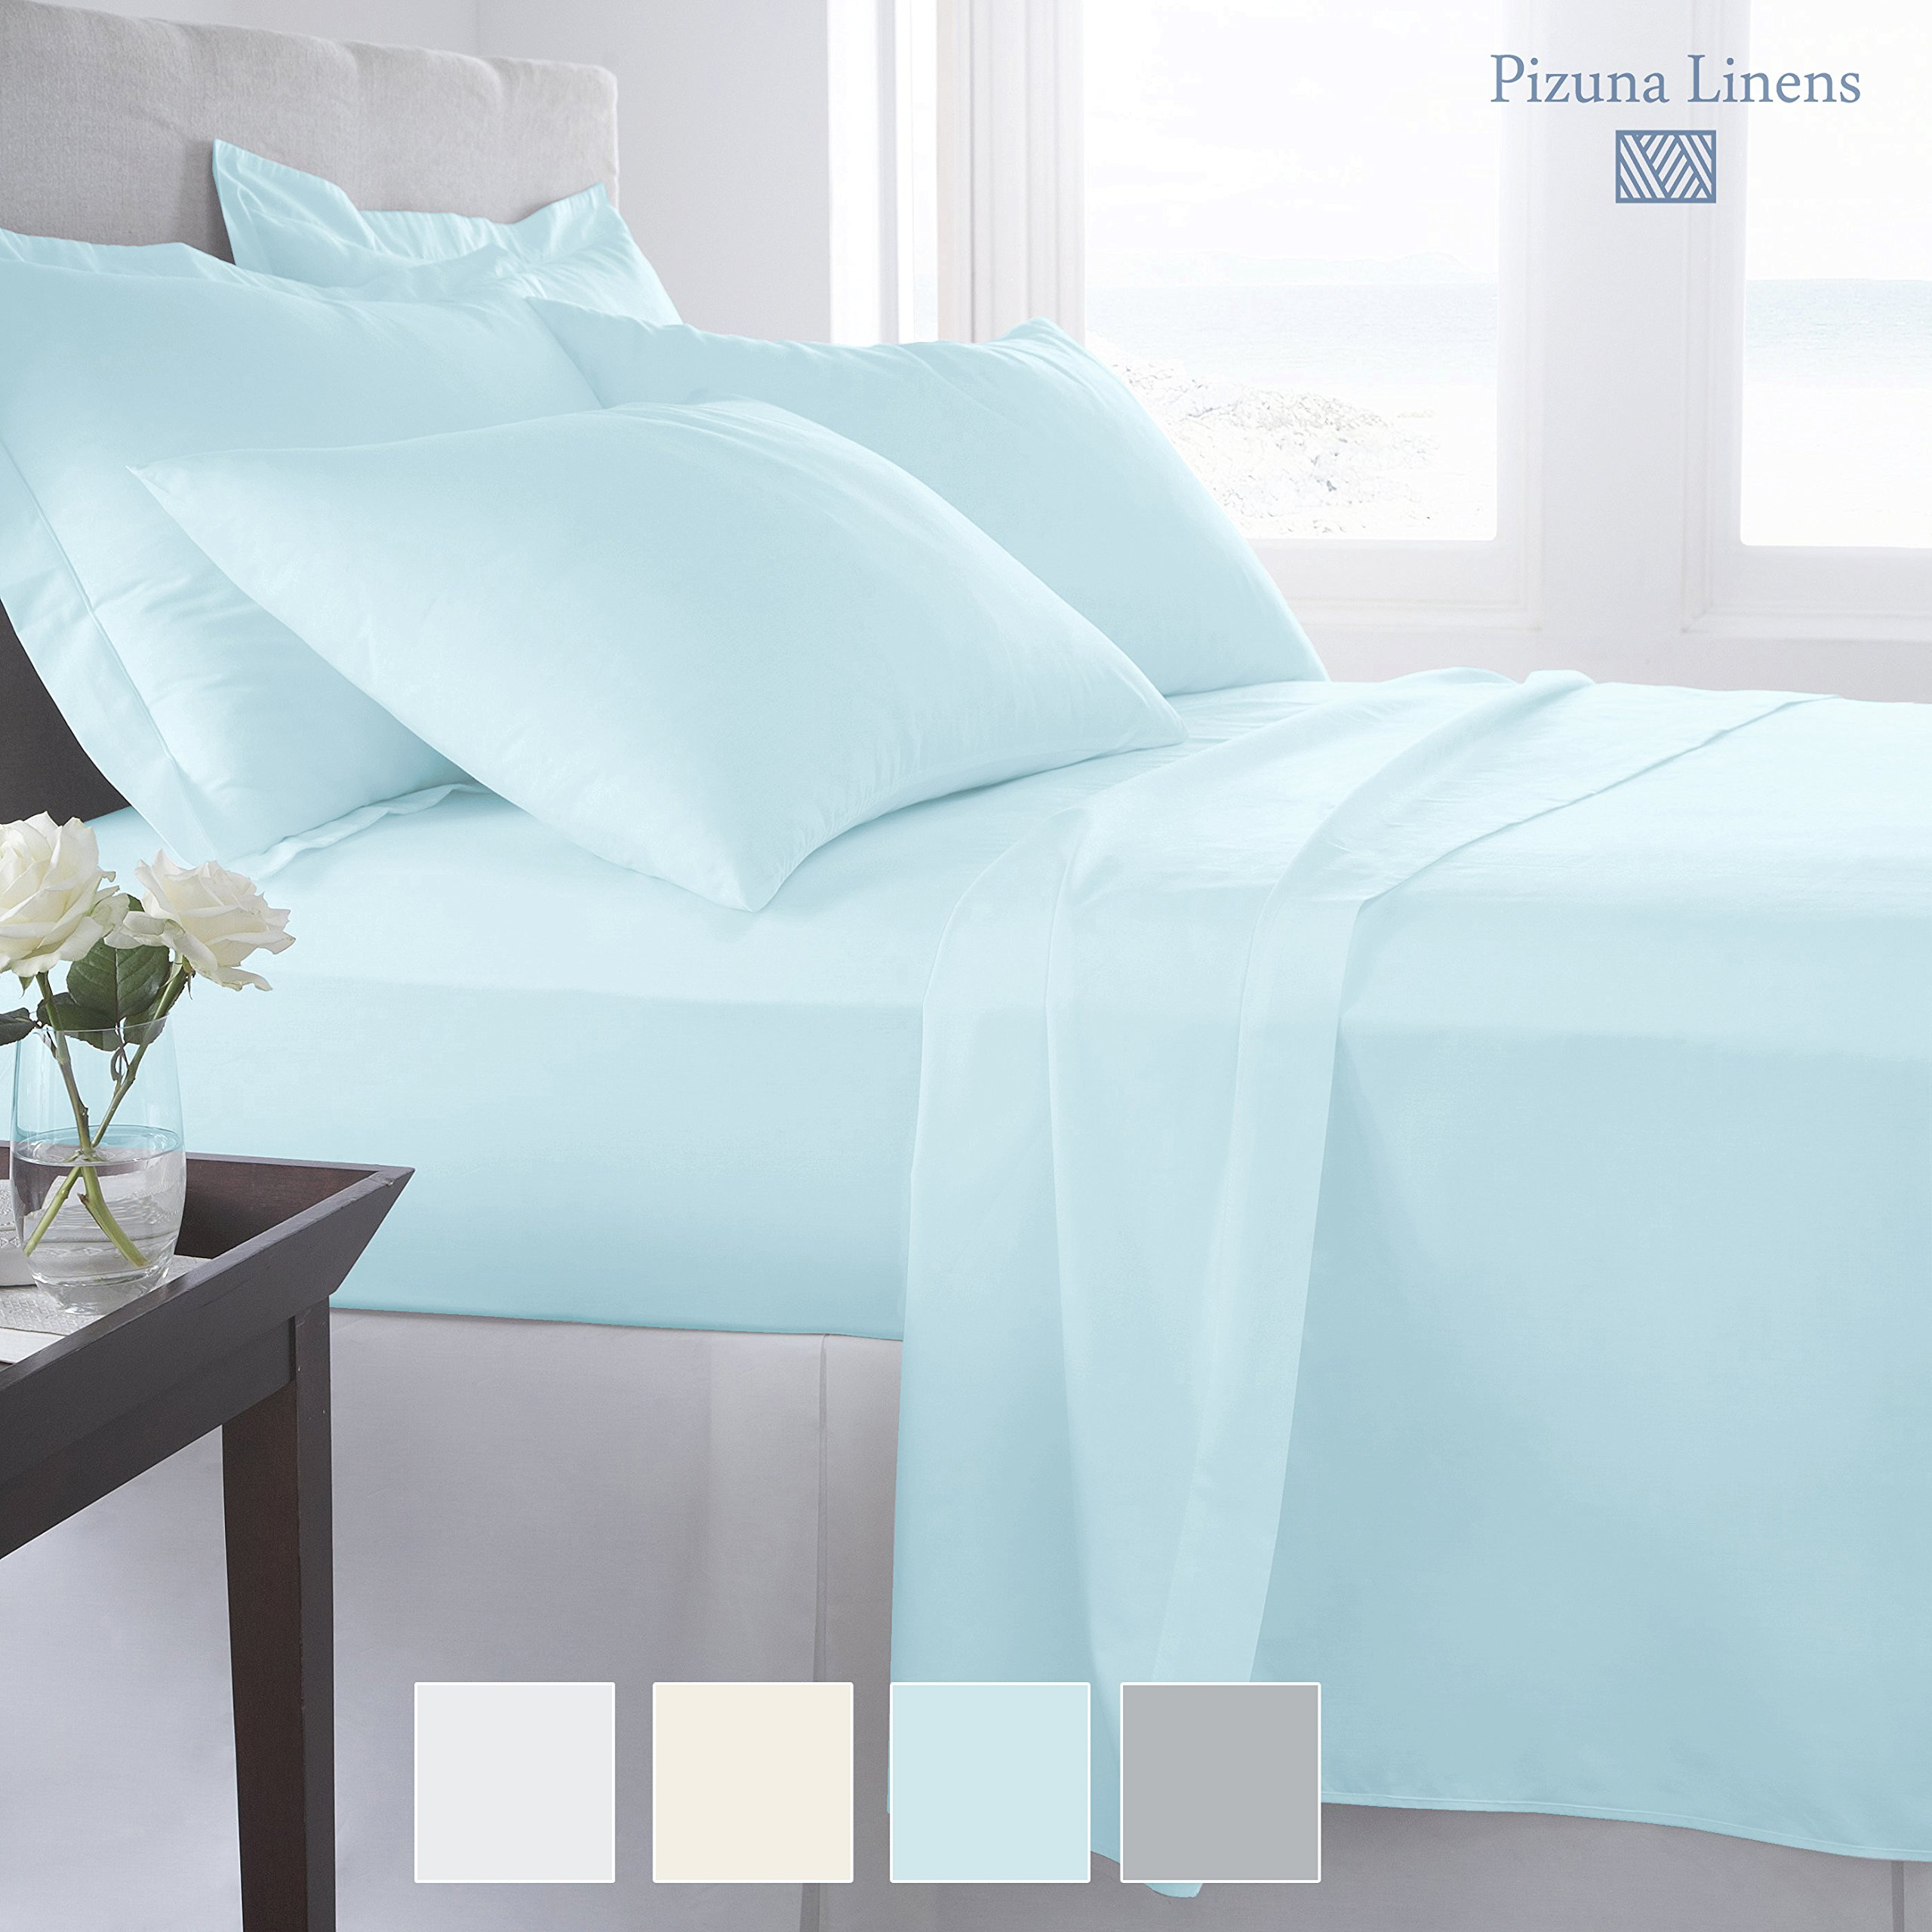 """Premium 1000 Thread Count 4pc Sheet Set, 100% Long Staple Cotton Light Blue Sheets, Luxurious Smooth Sateen Weave Bed Sheets fits upto 17"""" Deep Pockets (Baby Blue King Size 100% Cotton Sheet Set)"""